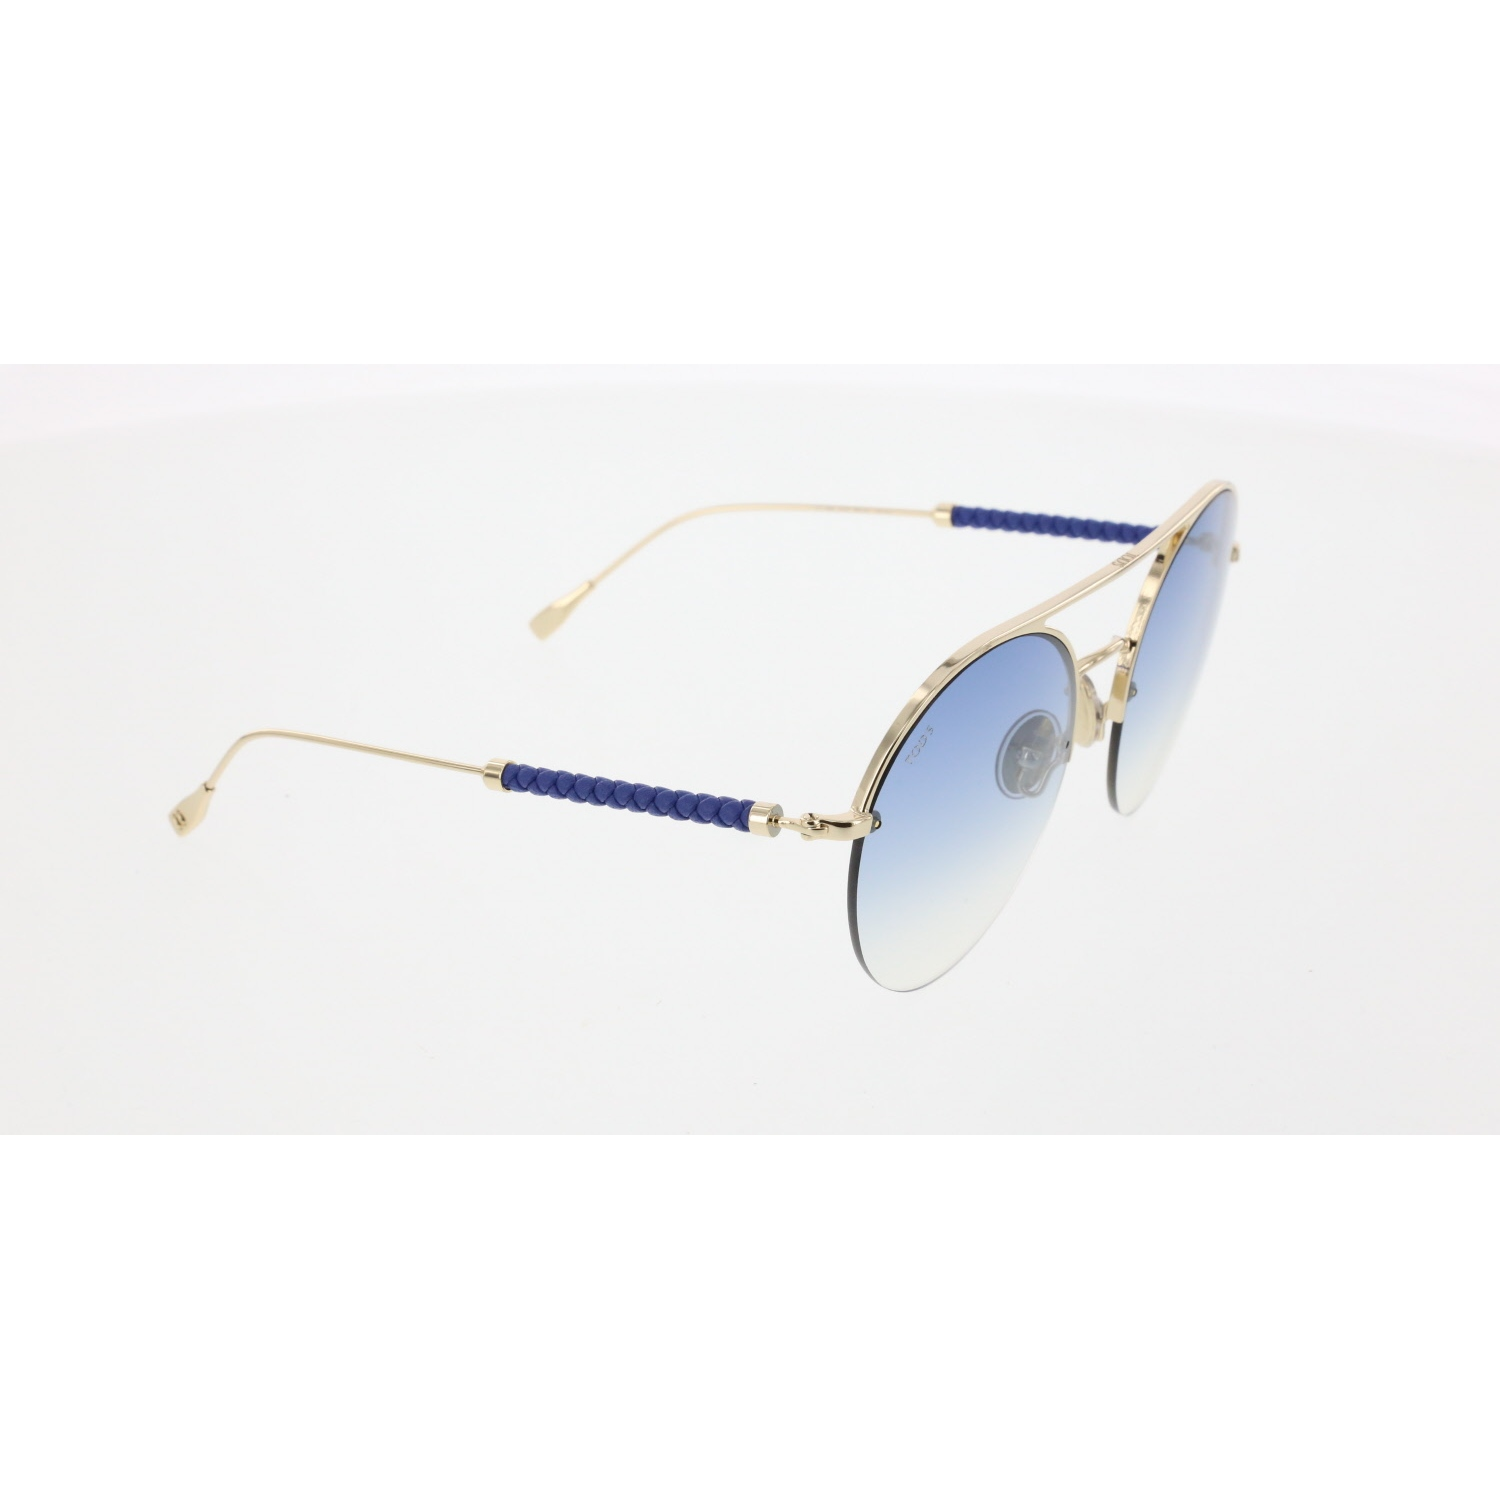 Unisex sunglasses to 0249 32w metal gold organic oval Round 56-20-140 tods